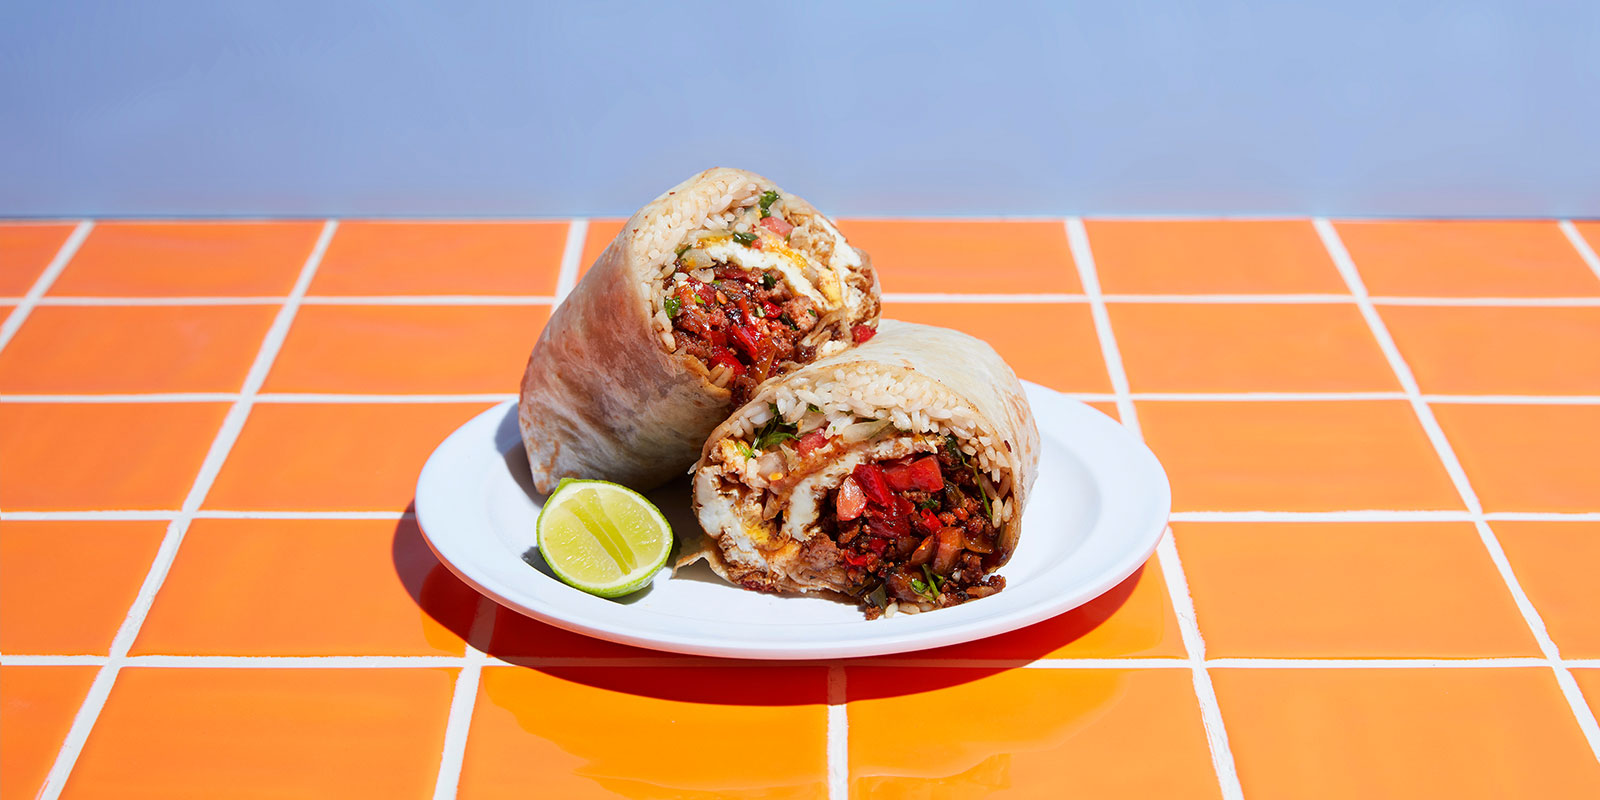 Thai Chili Pork Burrito